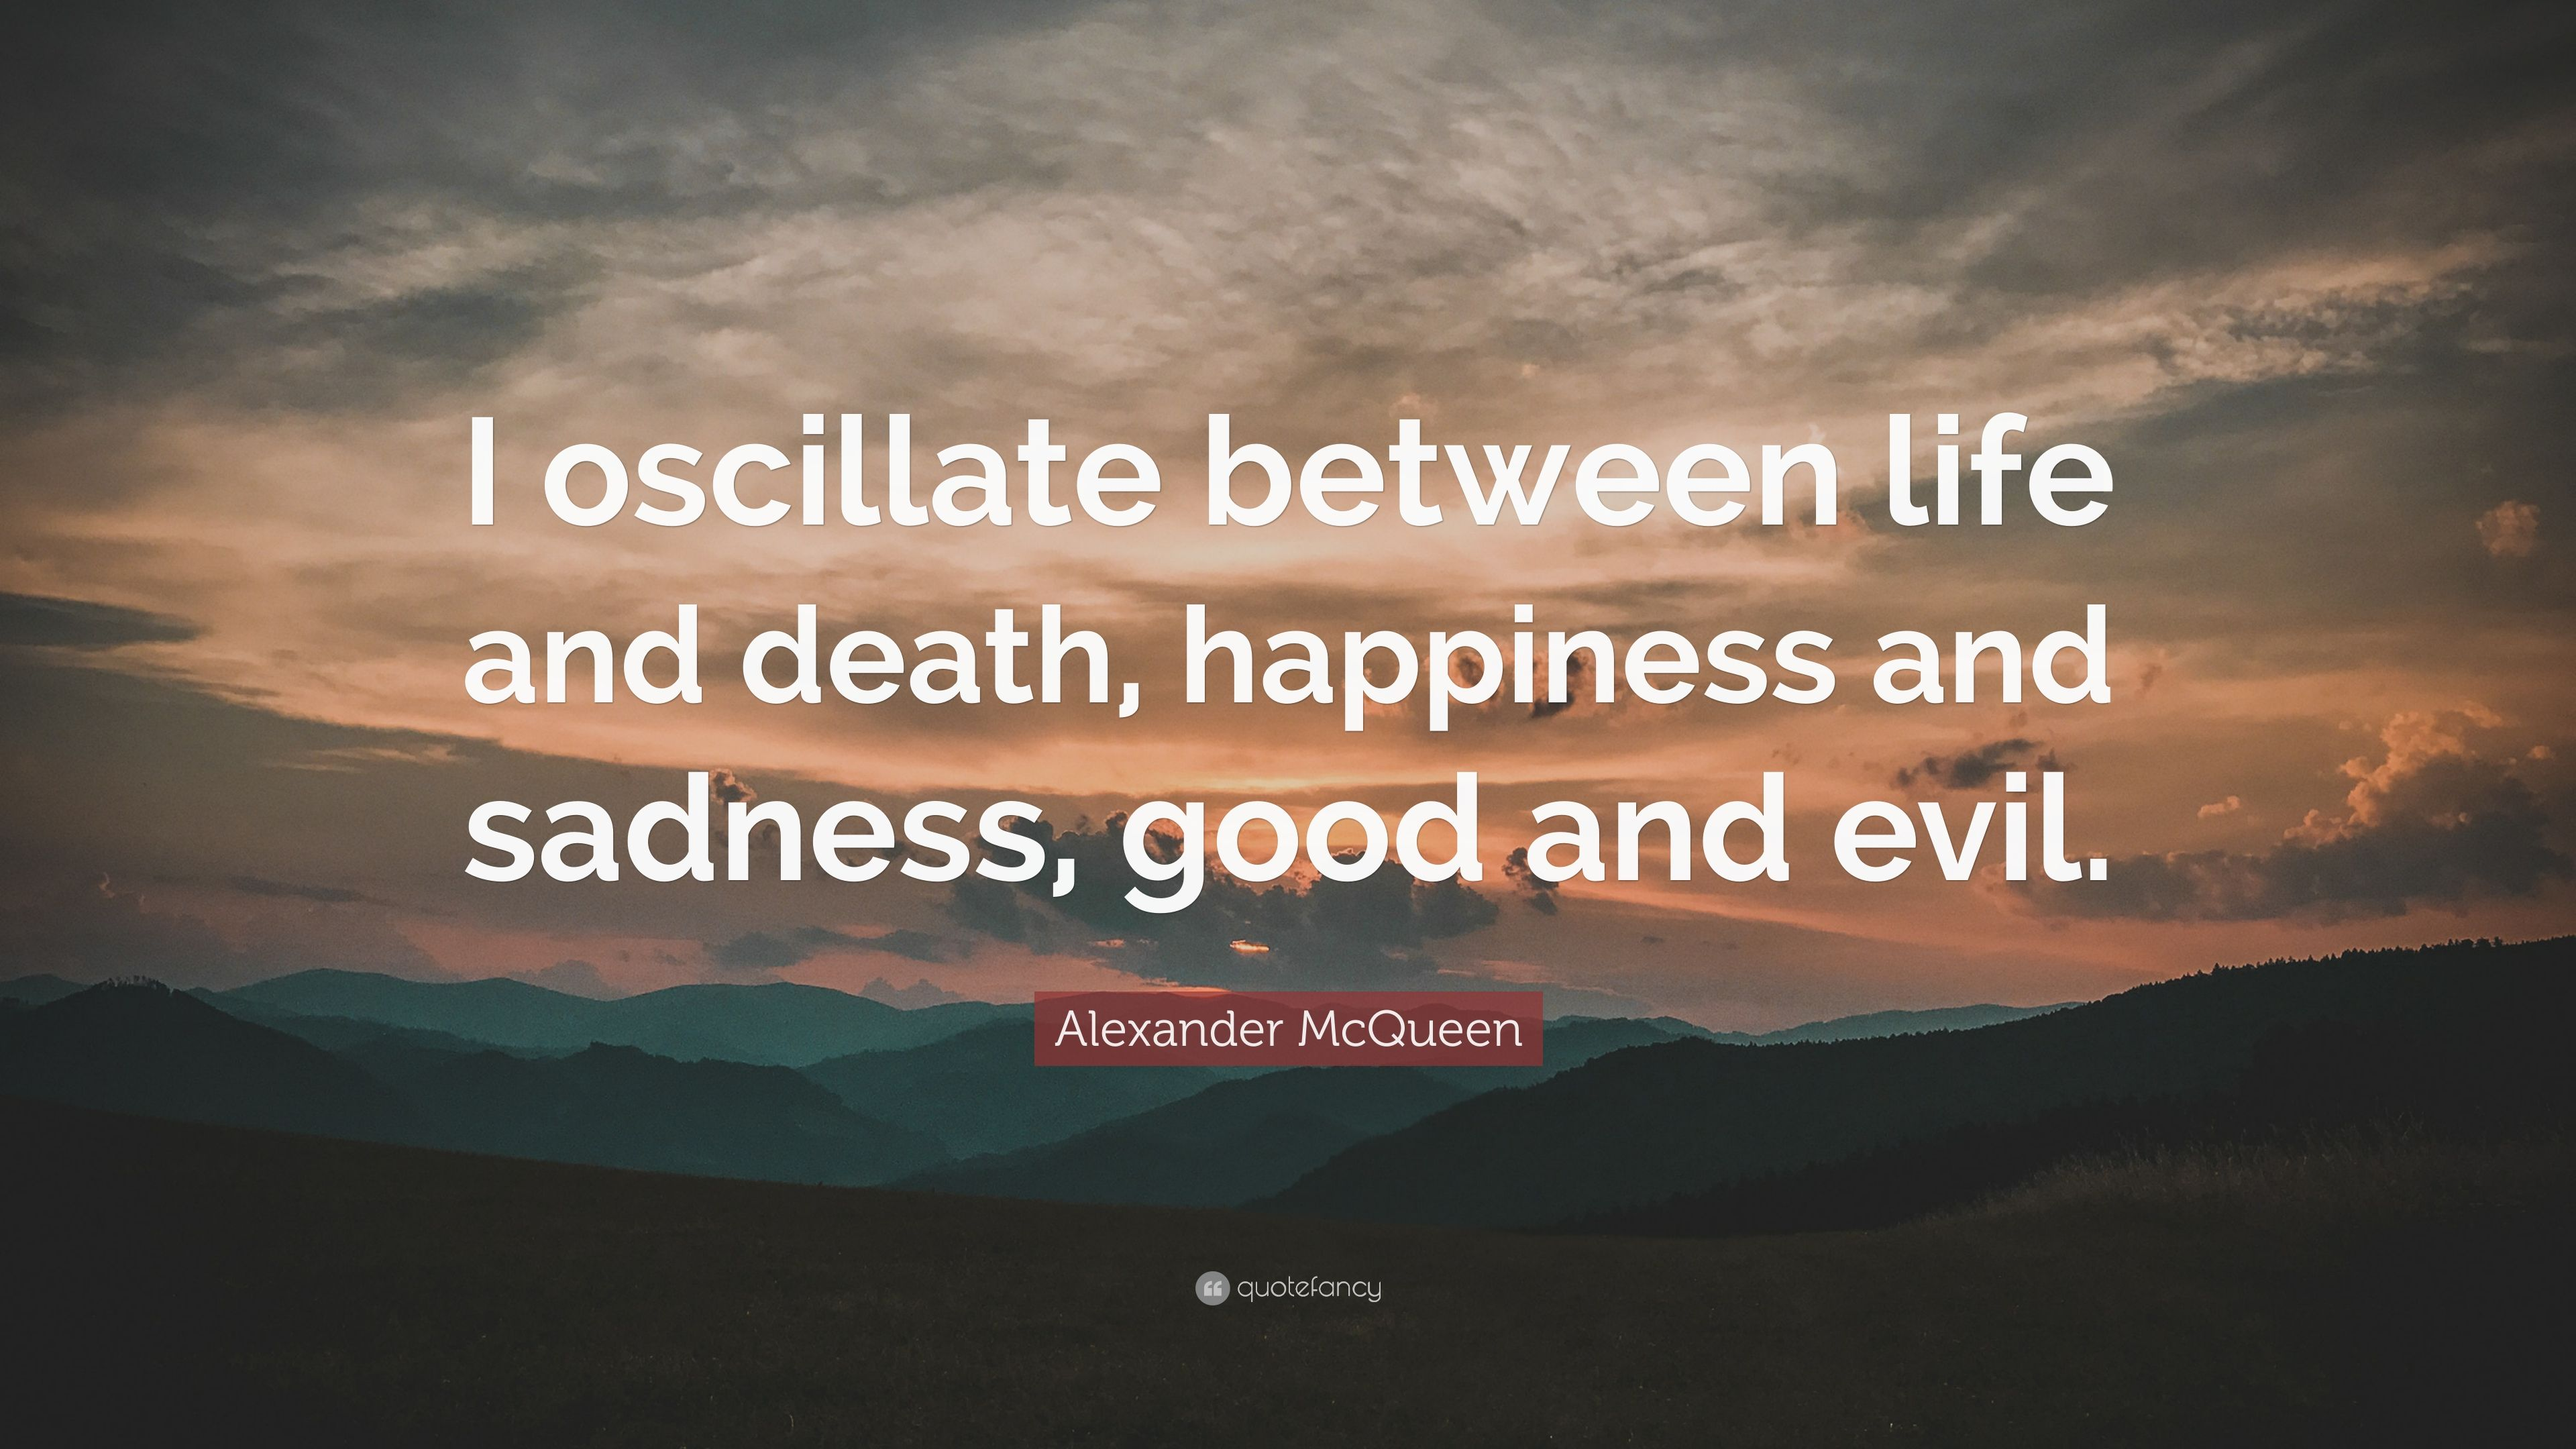 Quotes For Life And Death 10 Between Life And Death Quotes